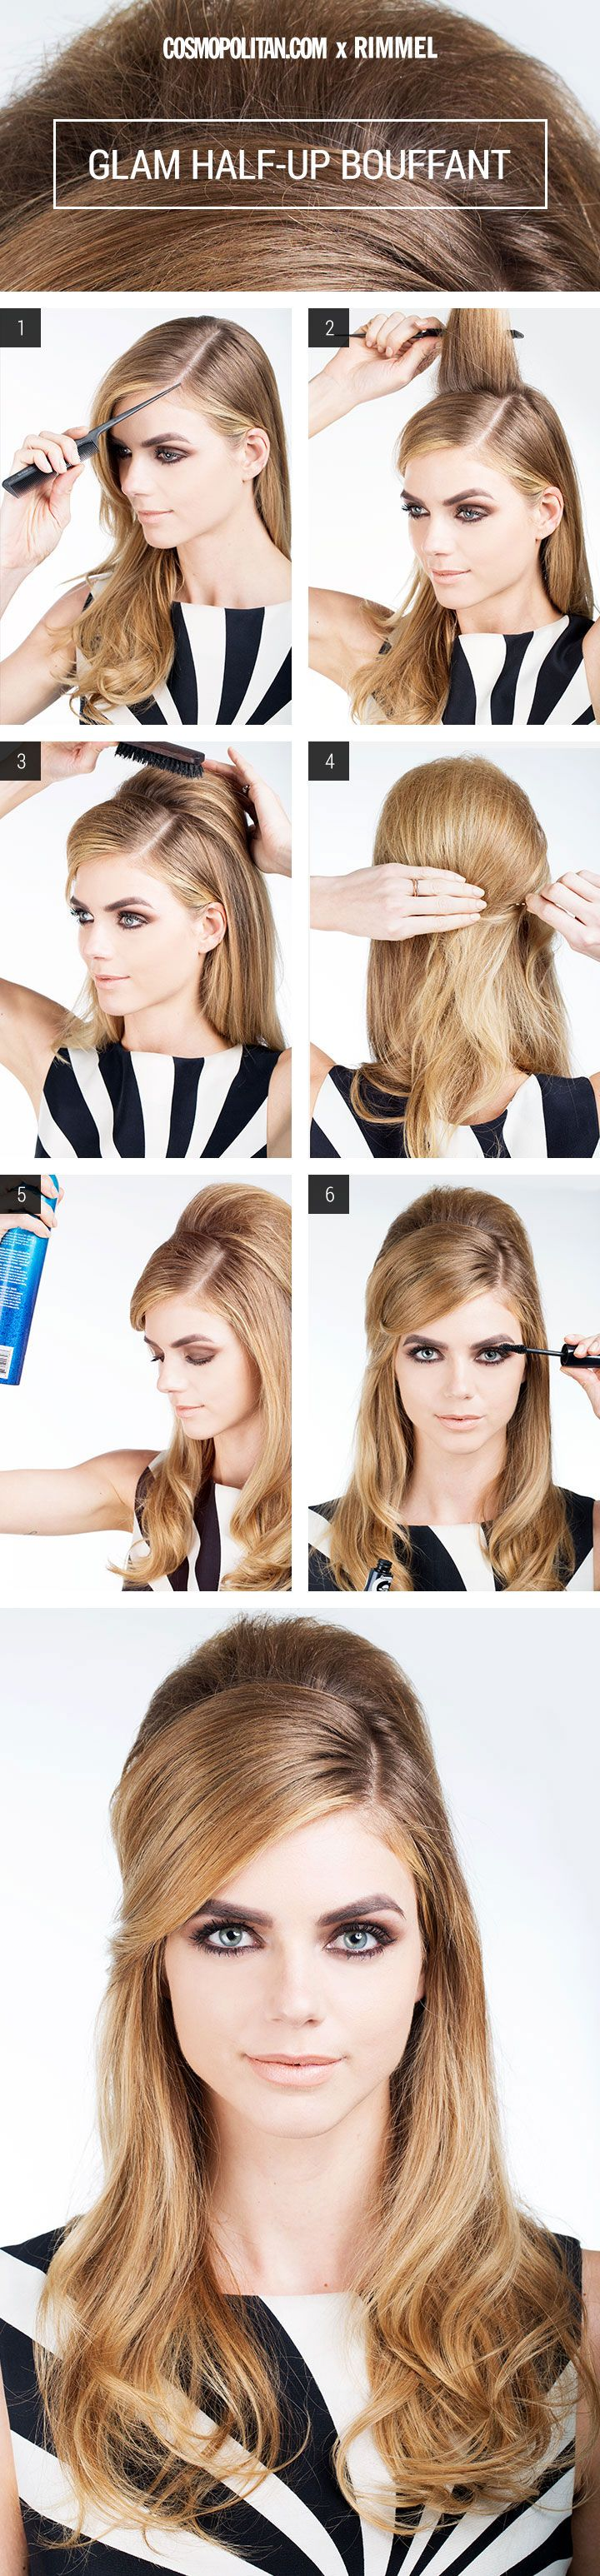 Hair how to glam half up bouffant hairstylists bardot and half girl hairstyles solutioingenieria Gallery